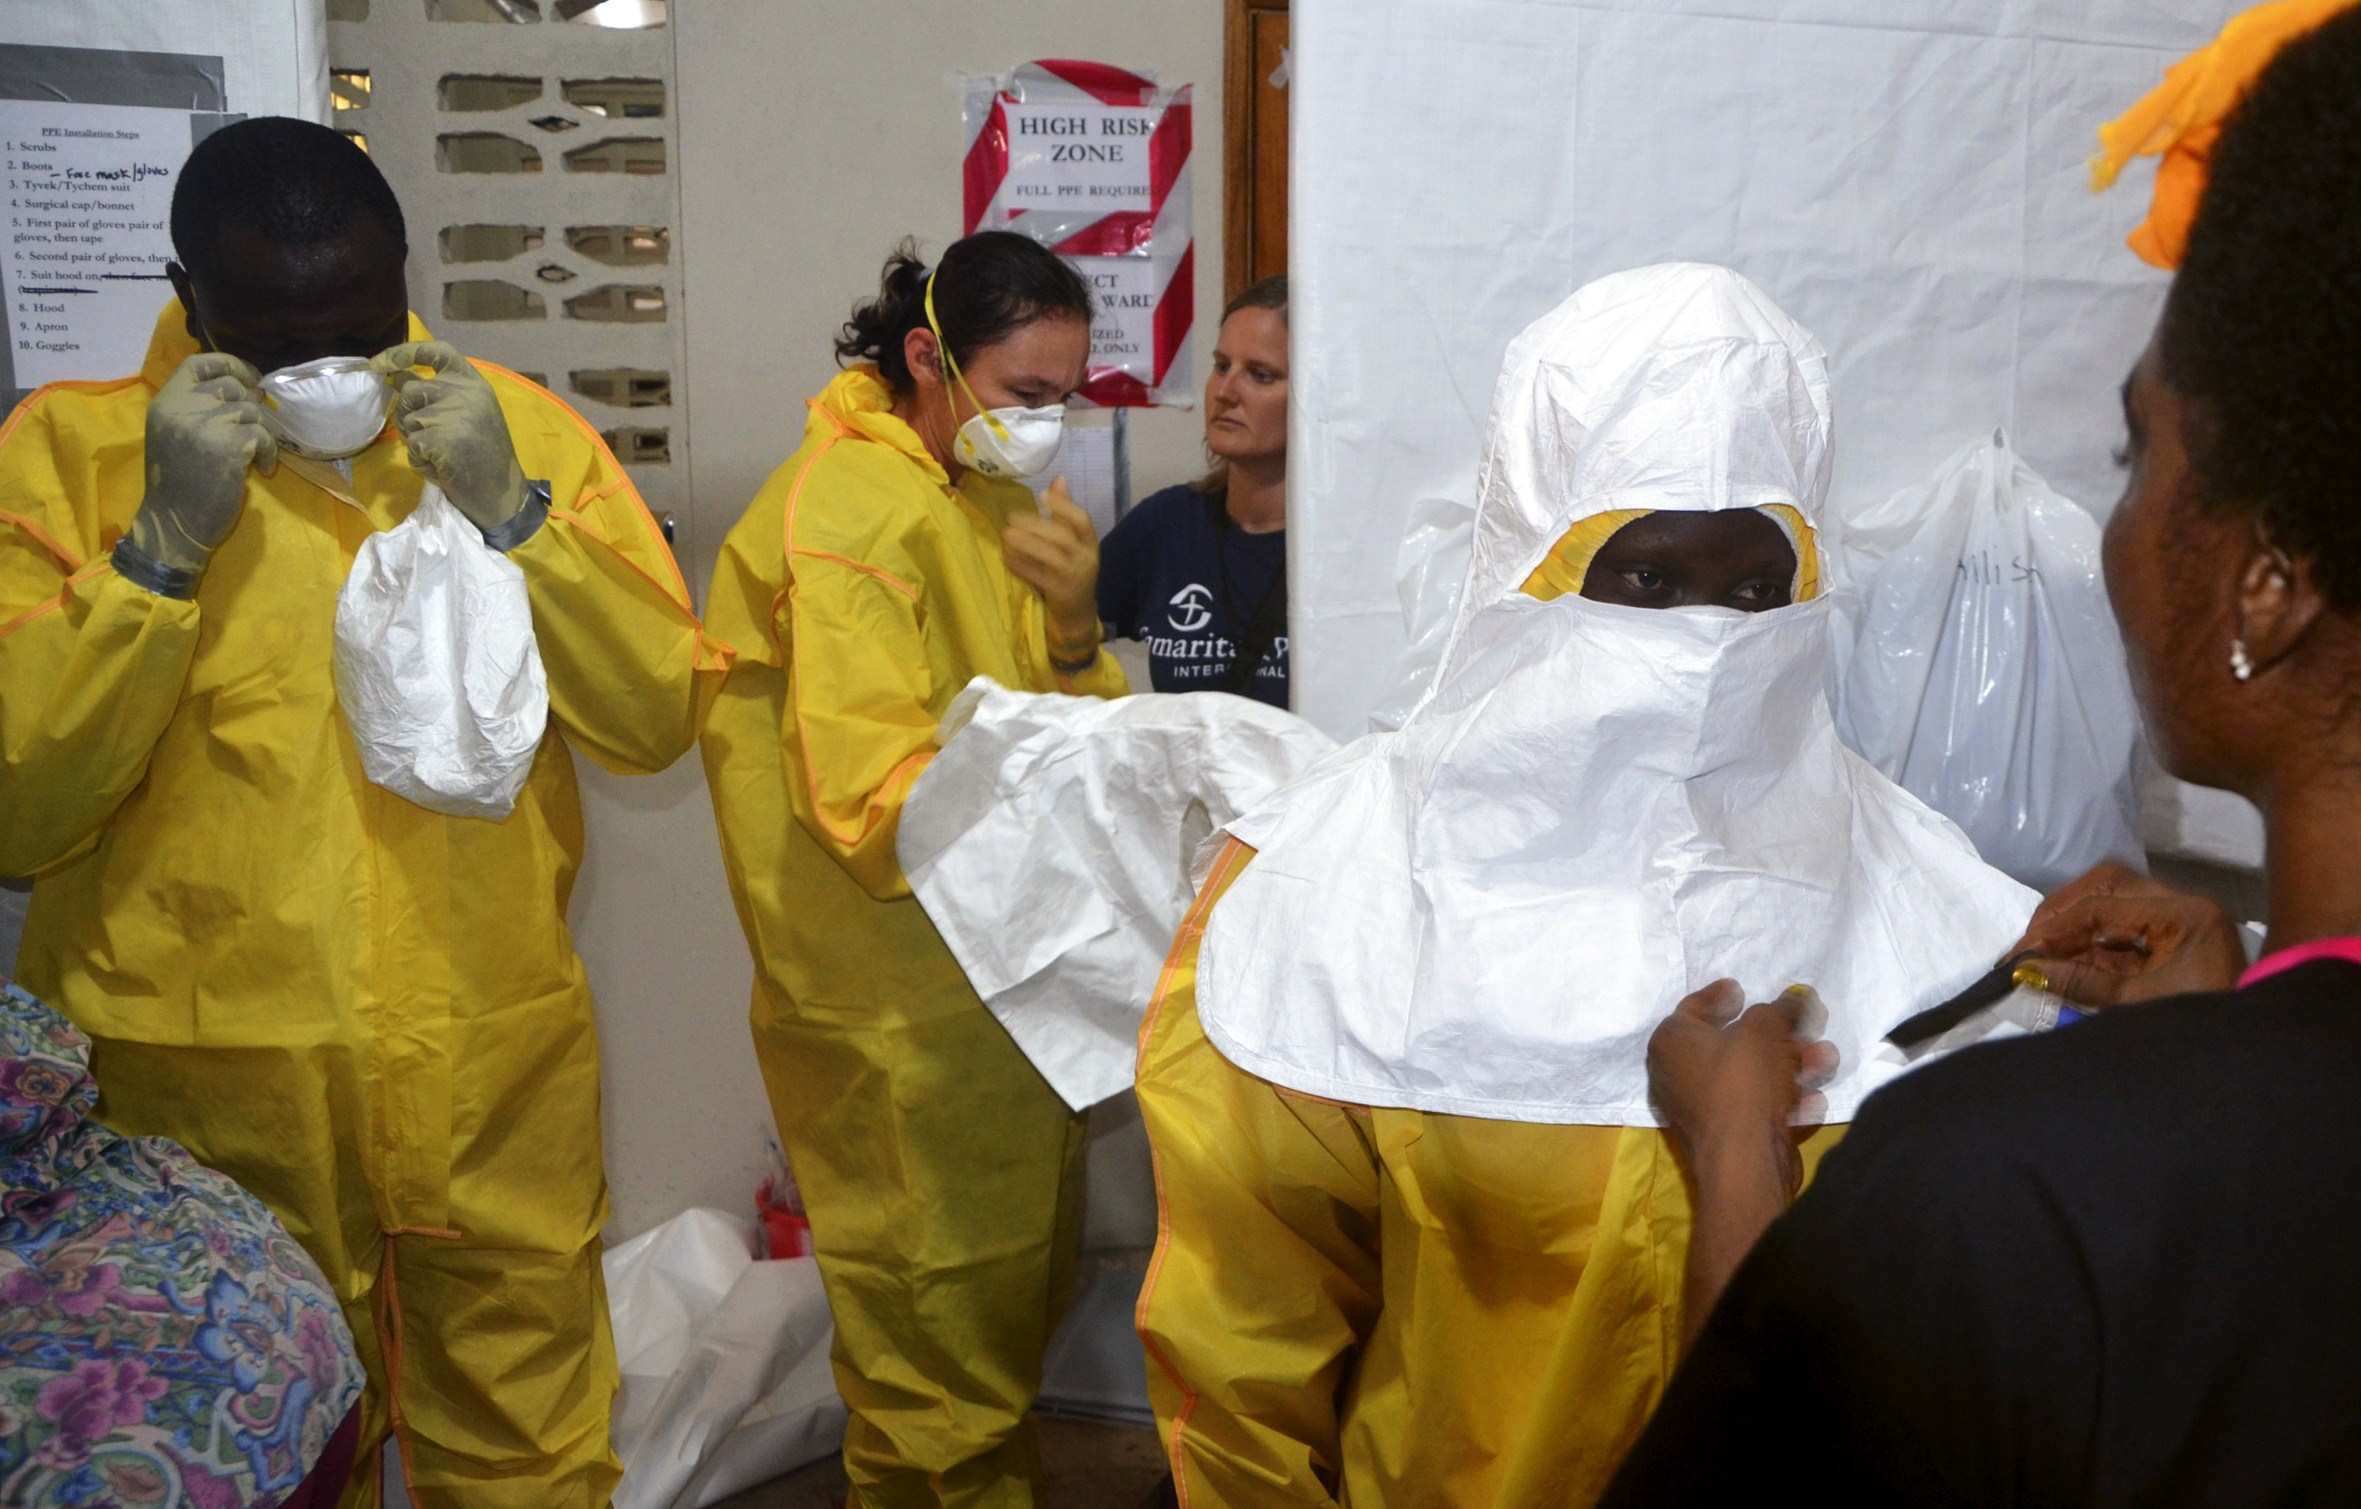 Staff of the Christian charity Samaritan's Purse putting on protective gear in the ELWA Hospital in Monrovia, Liberia, on July 24, 2014